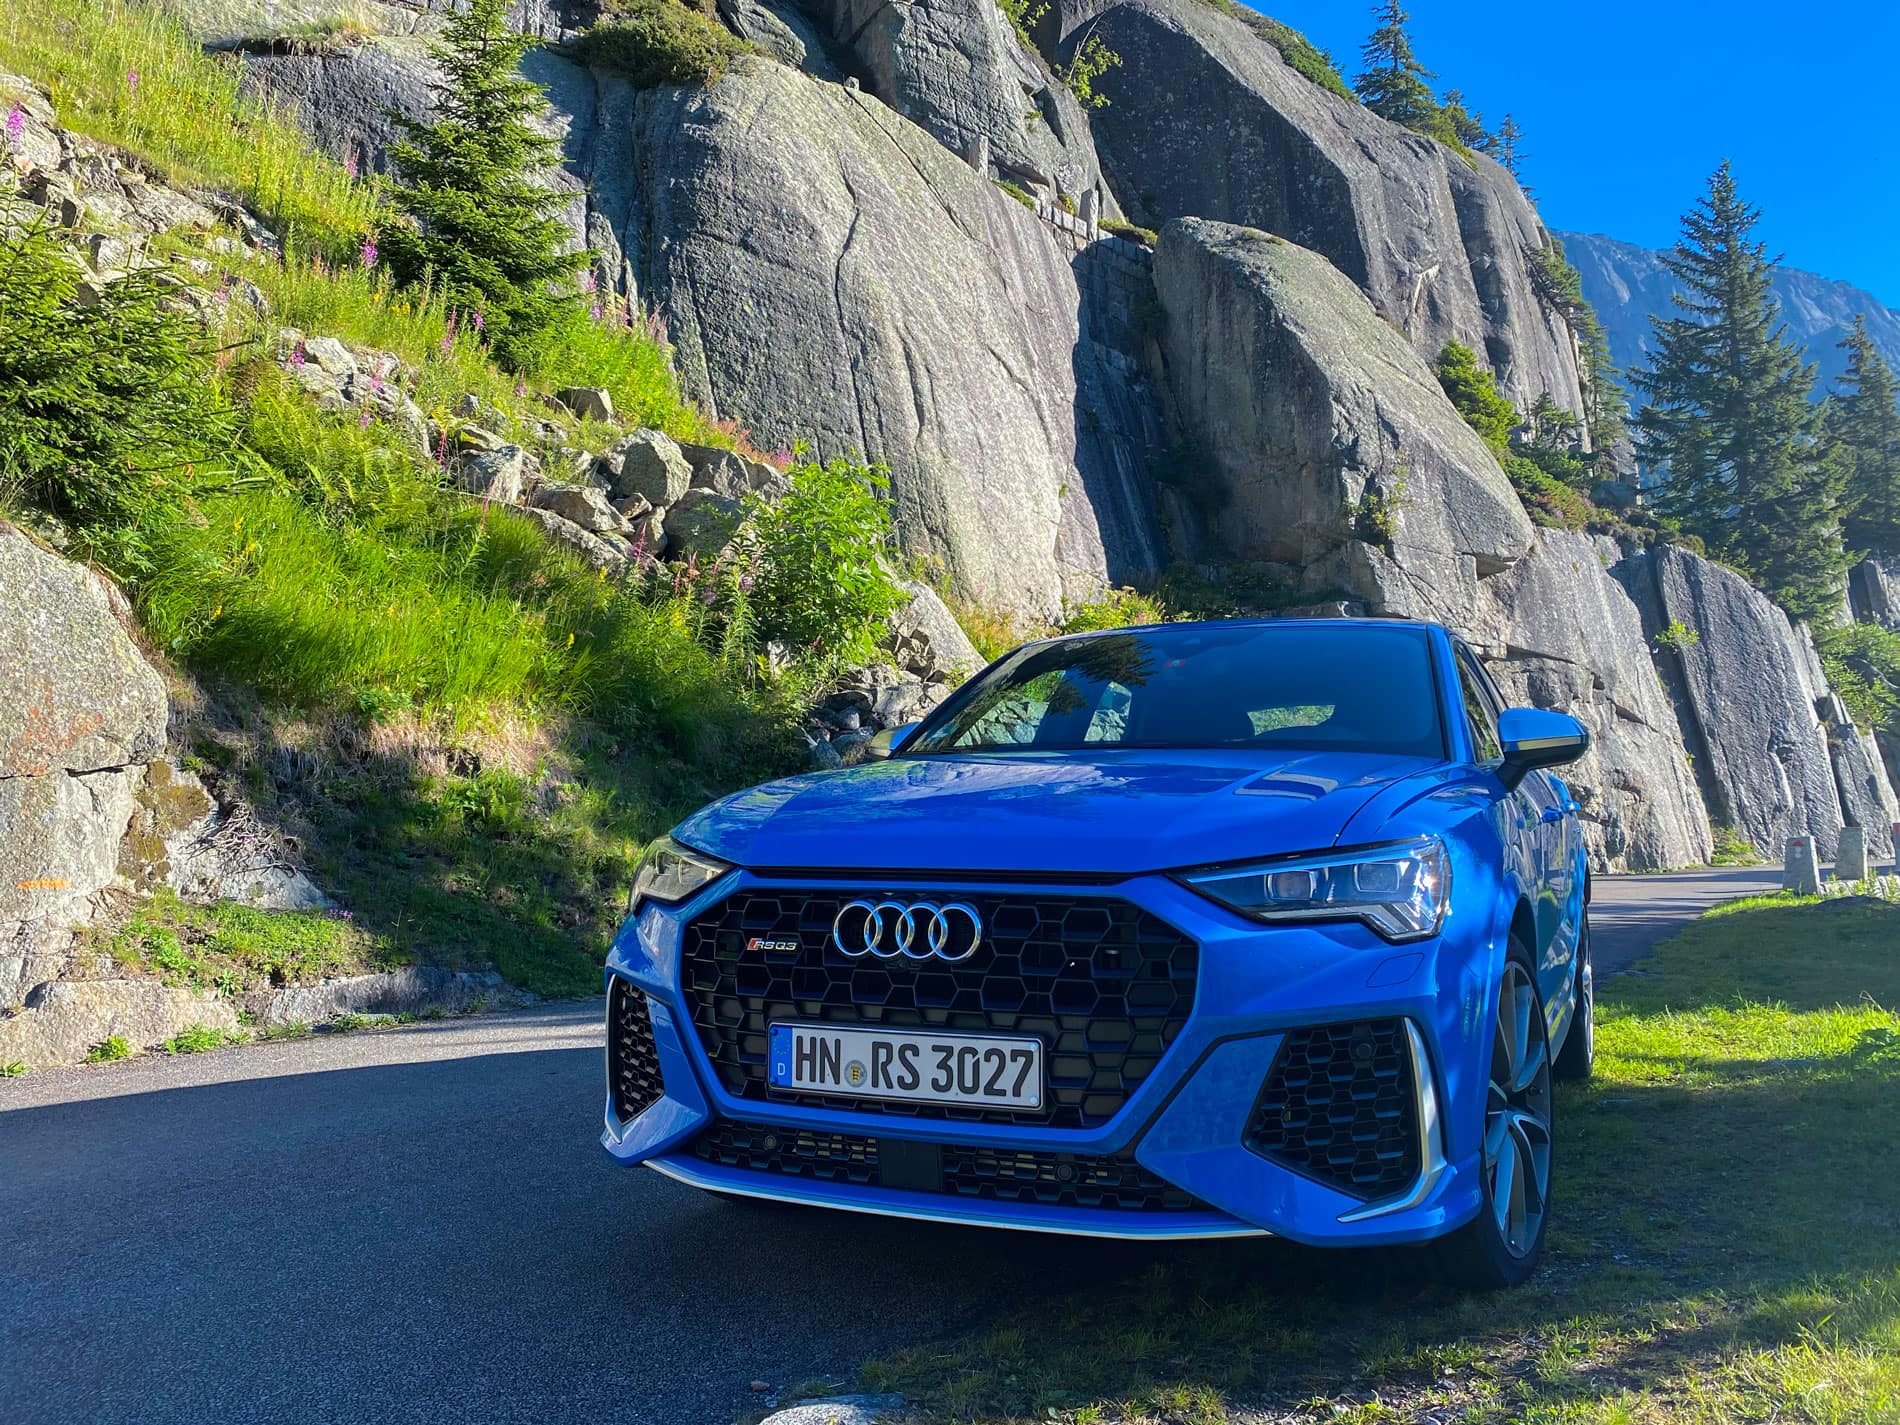 Chedi-andermatt-james-bond-roadtrip-audi-re-q3-sportback-8-high